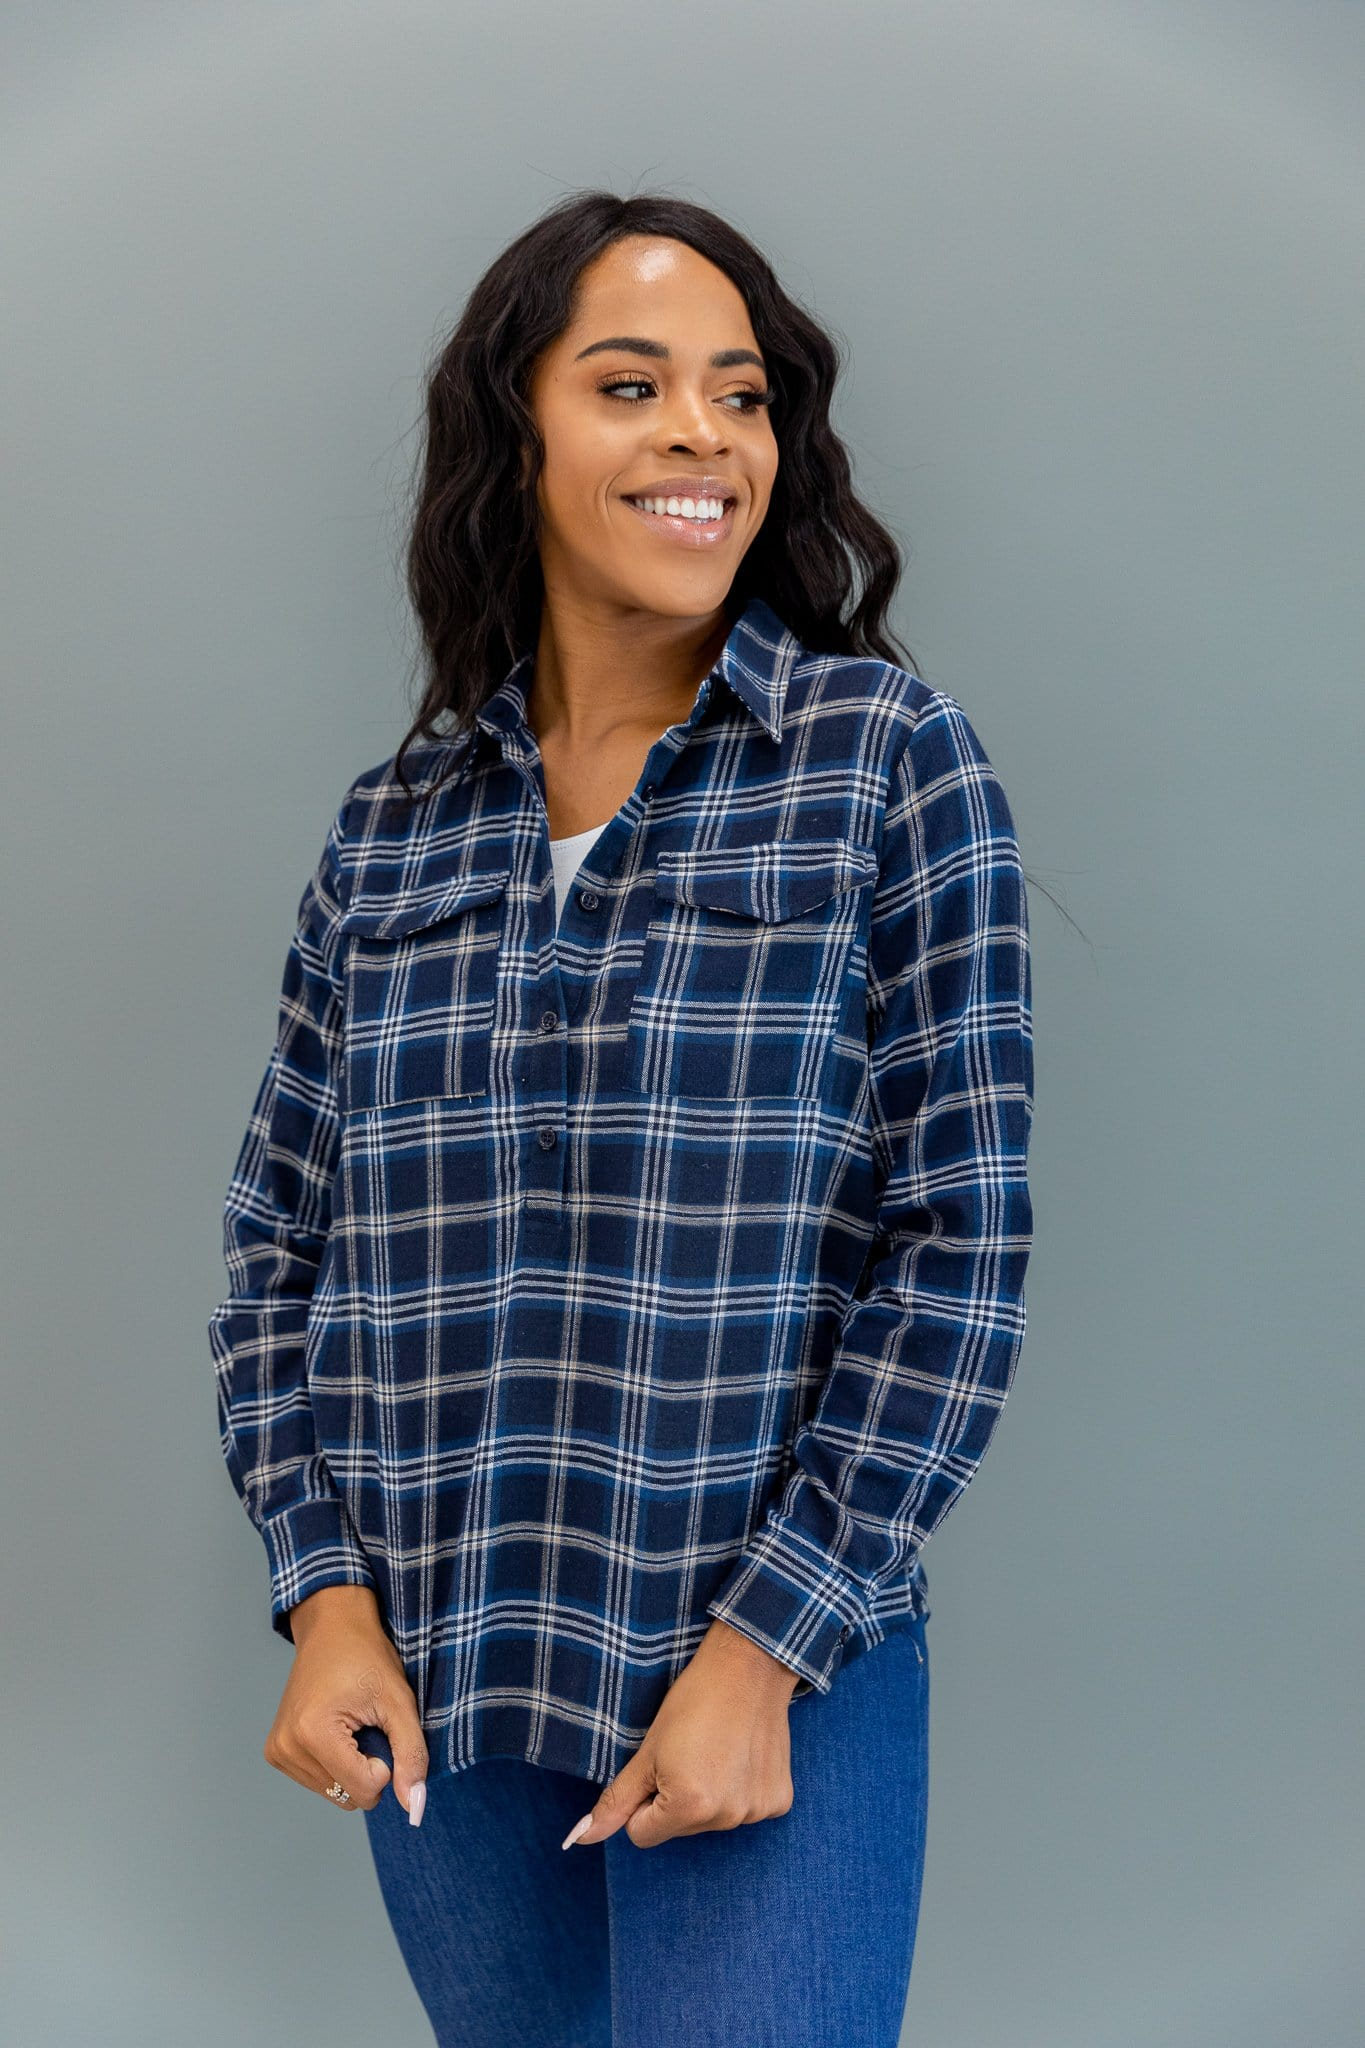 The Leavitt Button Down Plaid Top in Navy